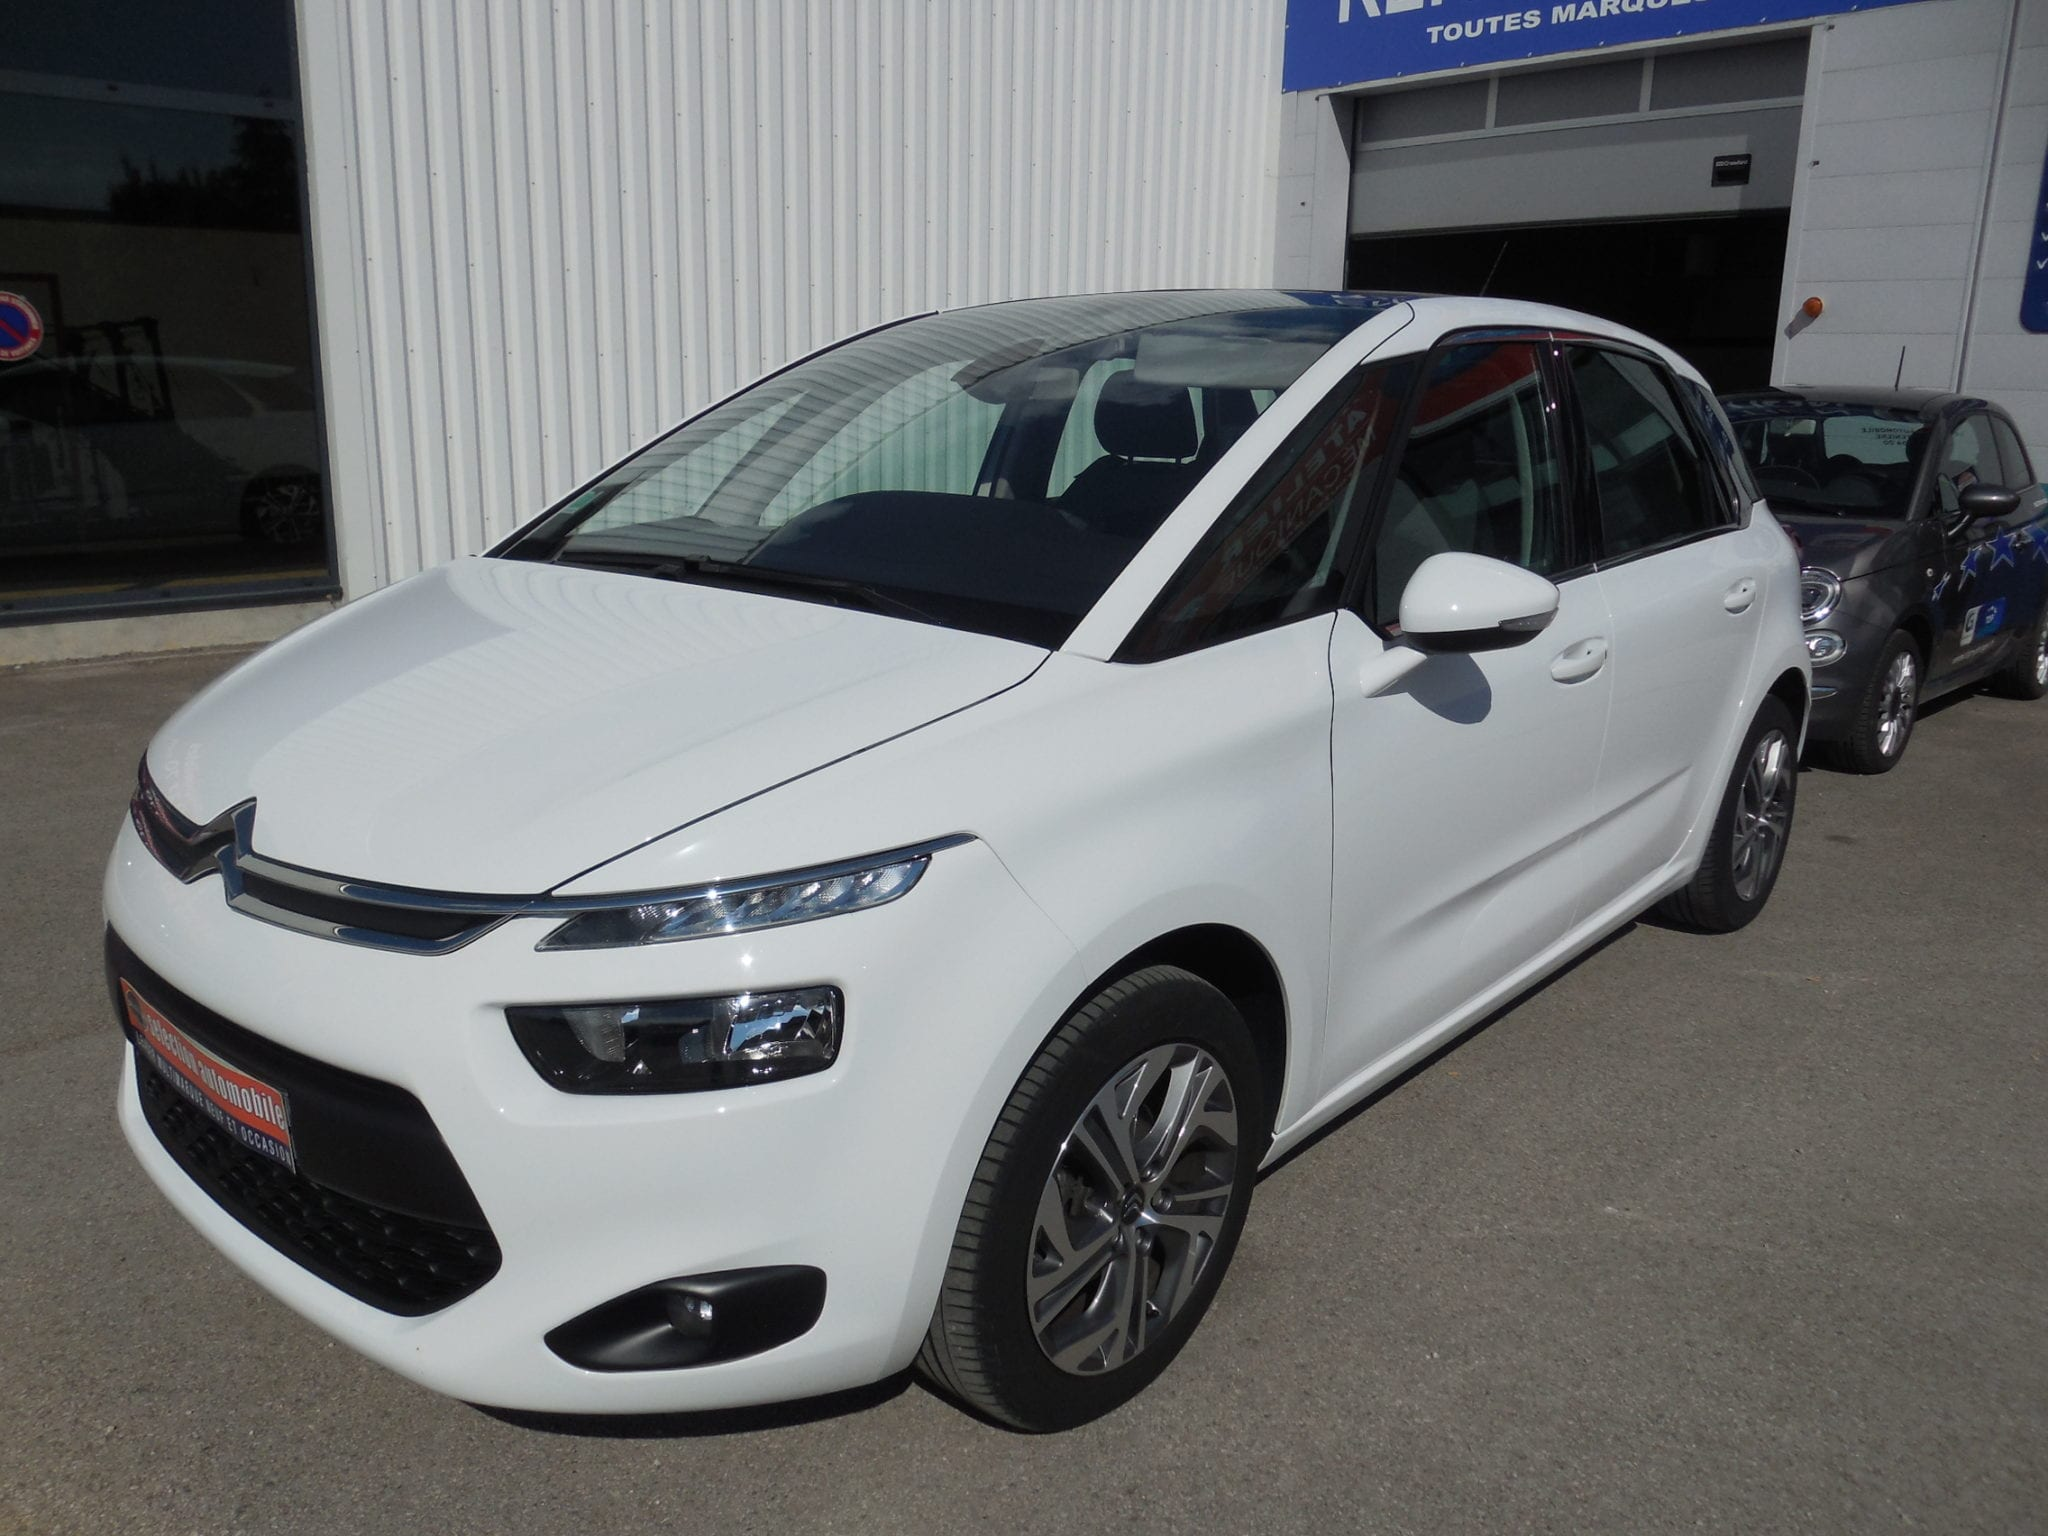 Audi C4 Picasso COLLECTION eHDI+OPTIONS 30446 KMS  - Image 1